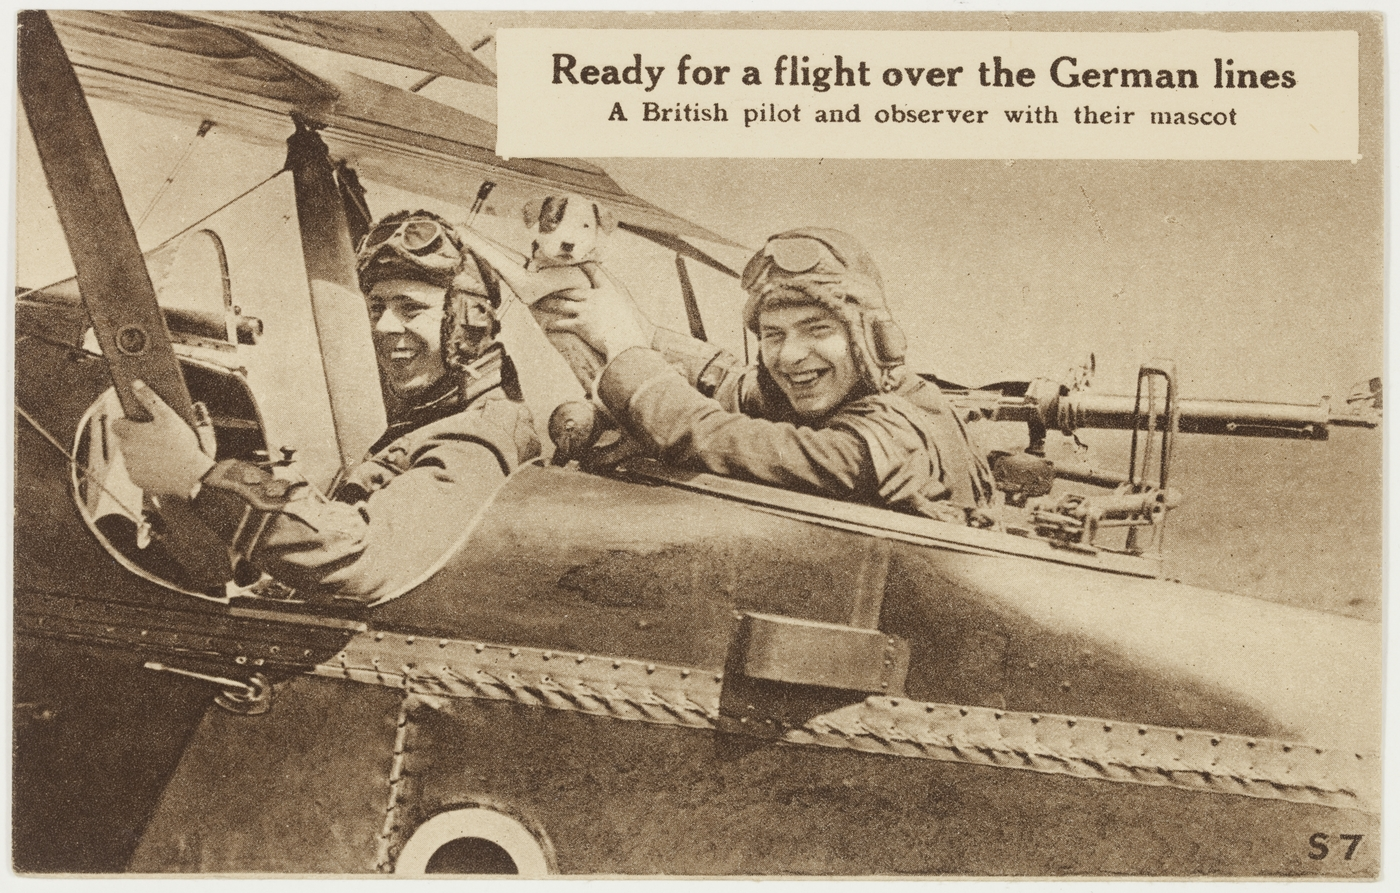 Ready for a flight over the German lines - a British pilot and observer with their mascot